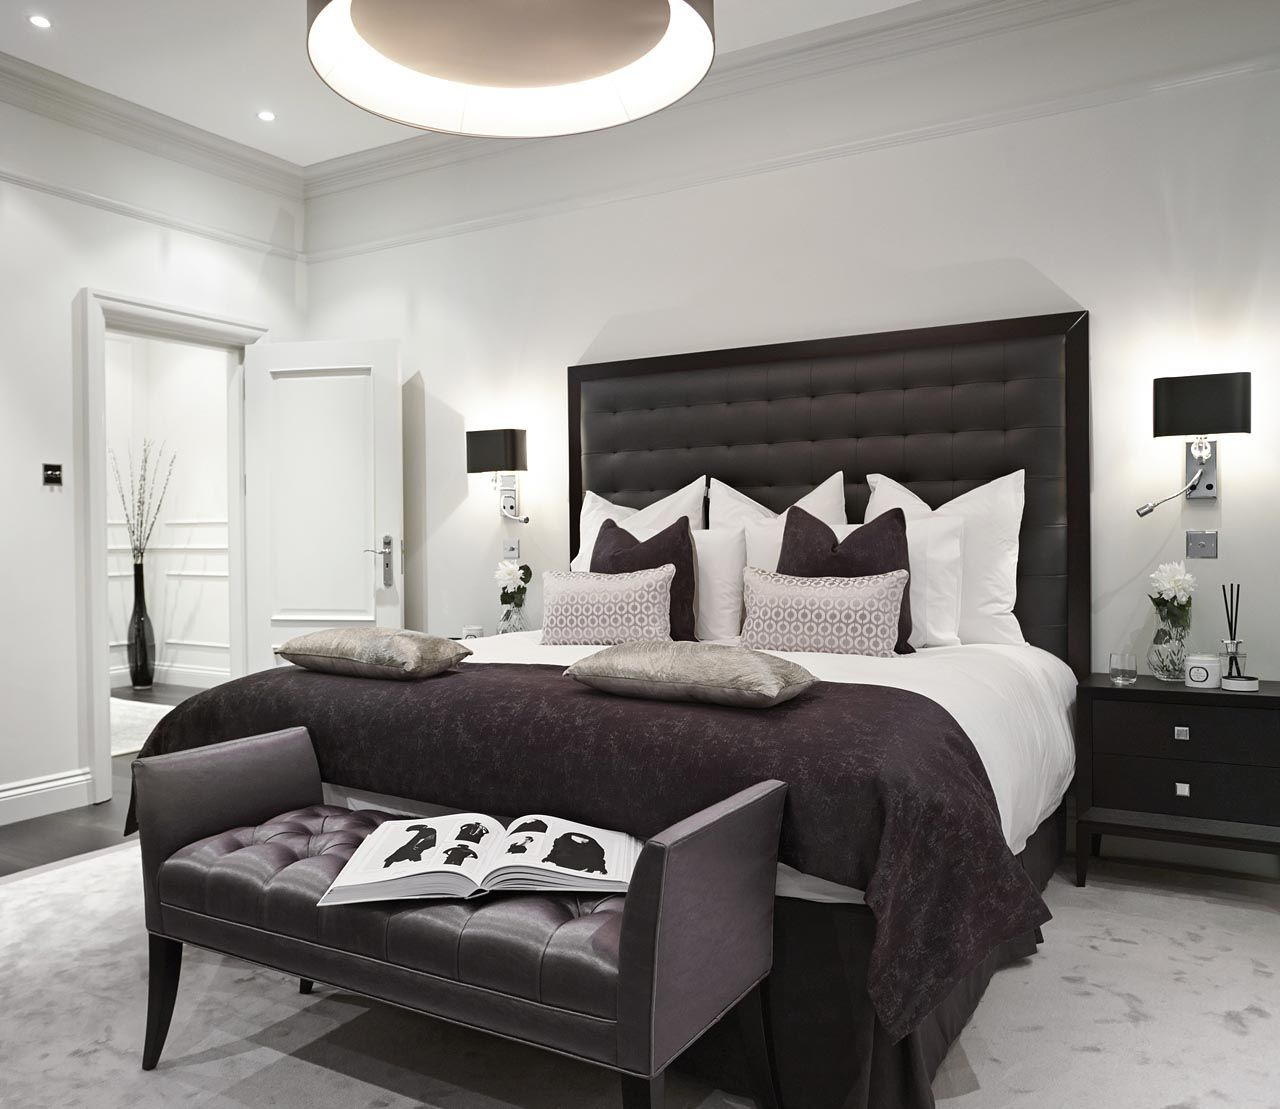 High End Home Design Ideas: High End Luxury Interior Designers In London